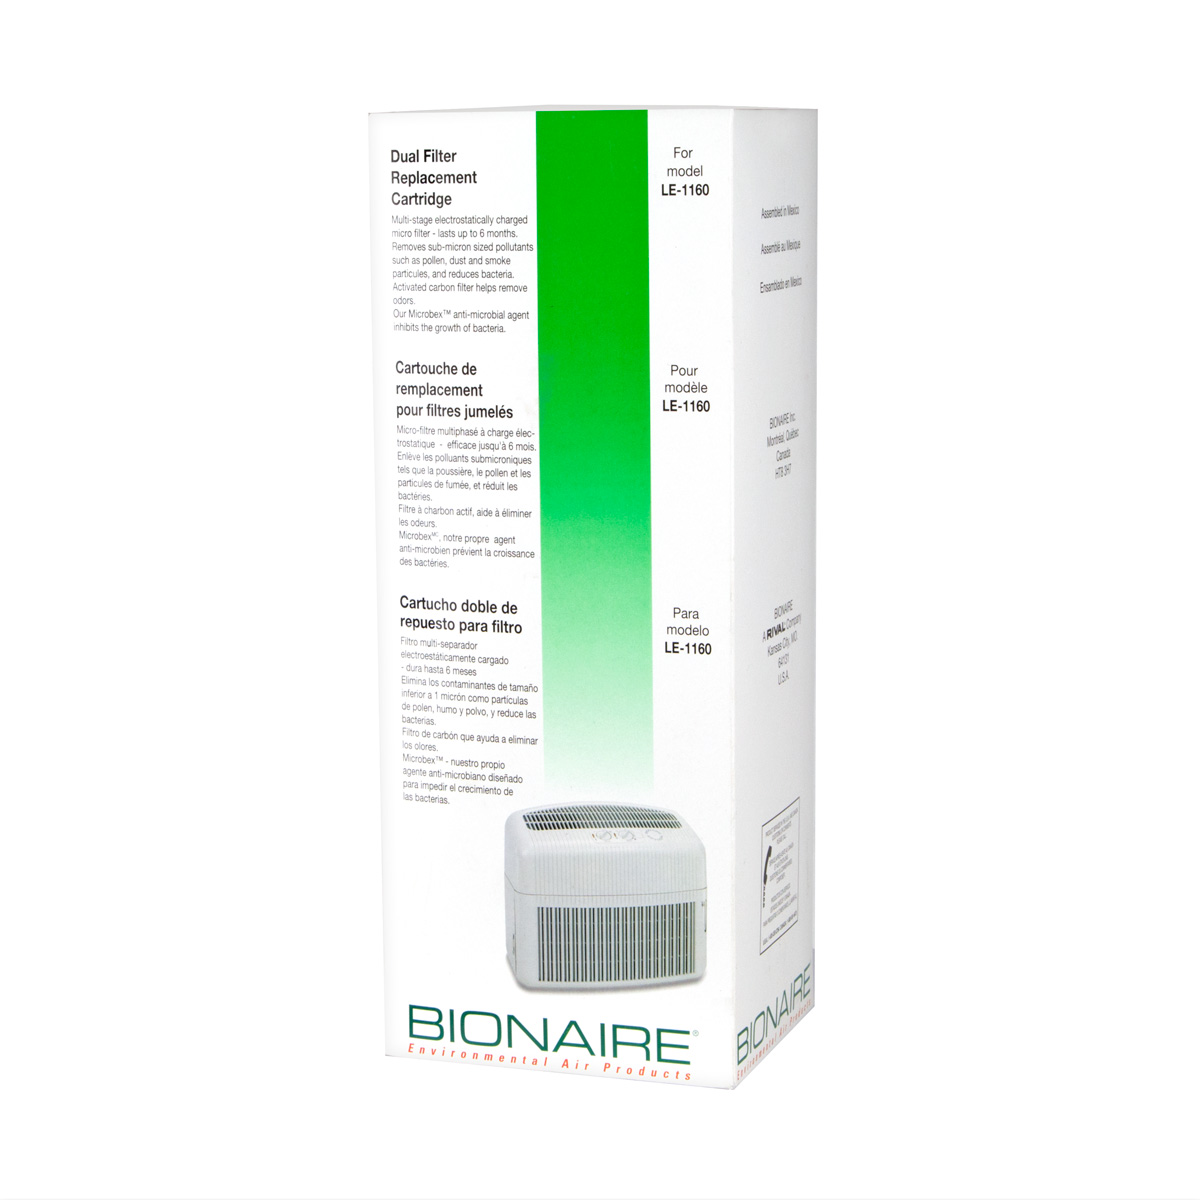 Bionaire® Dual Filter Replacement Cartridge A1101D X Bionaire  #00BB12